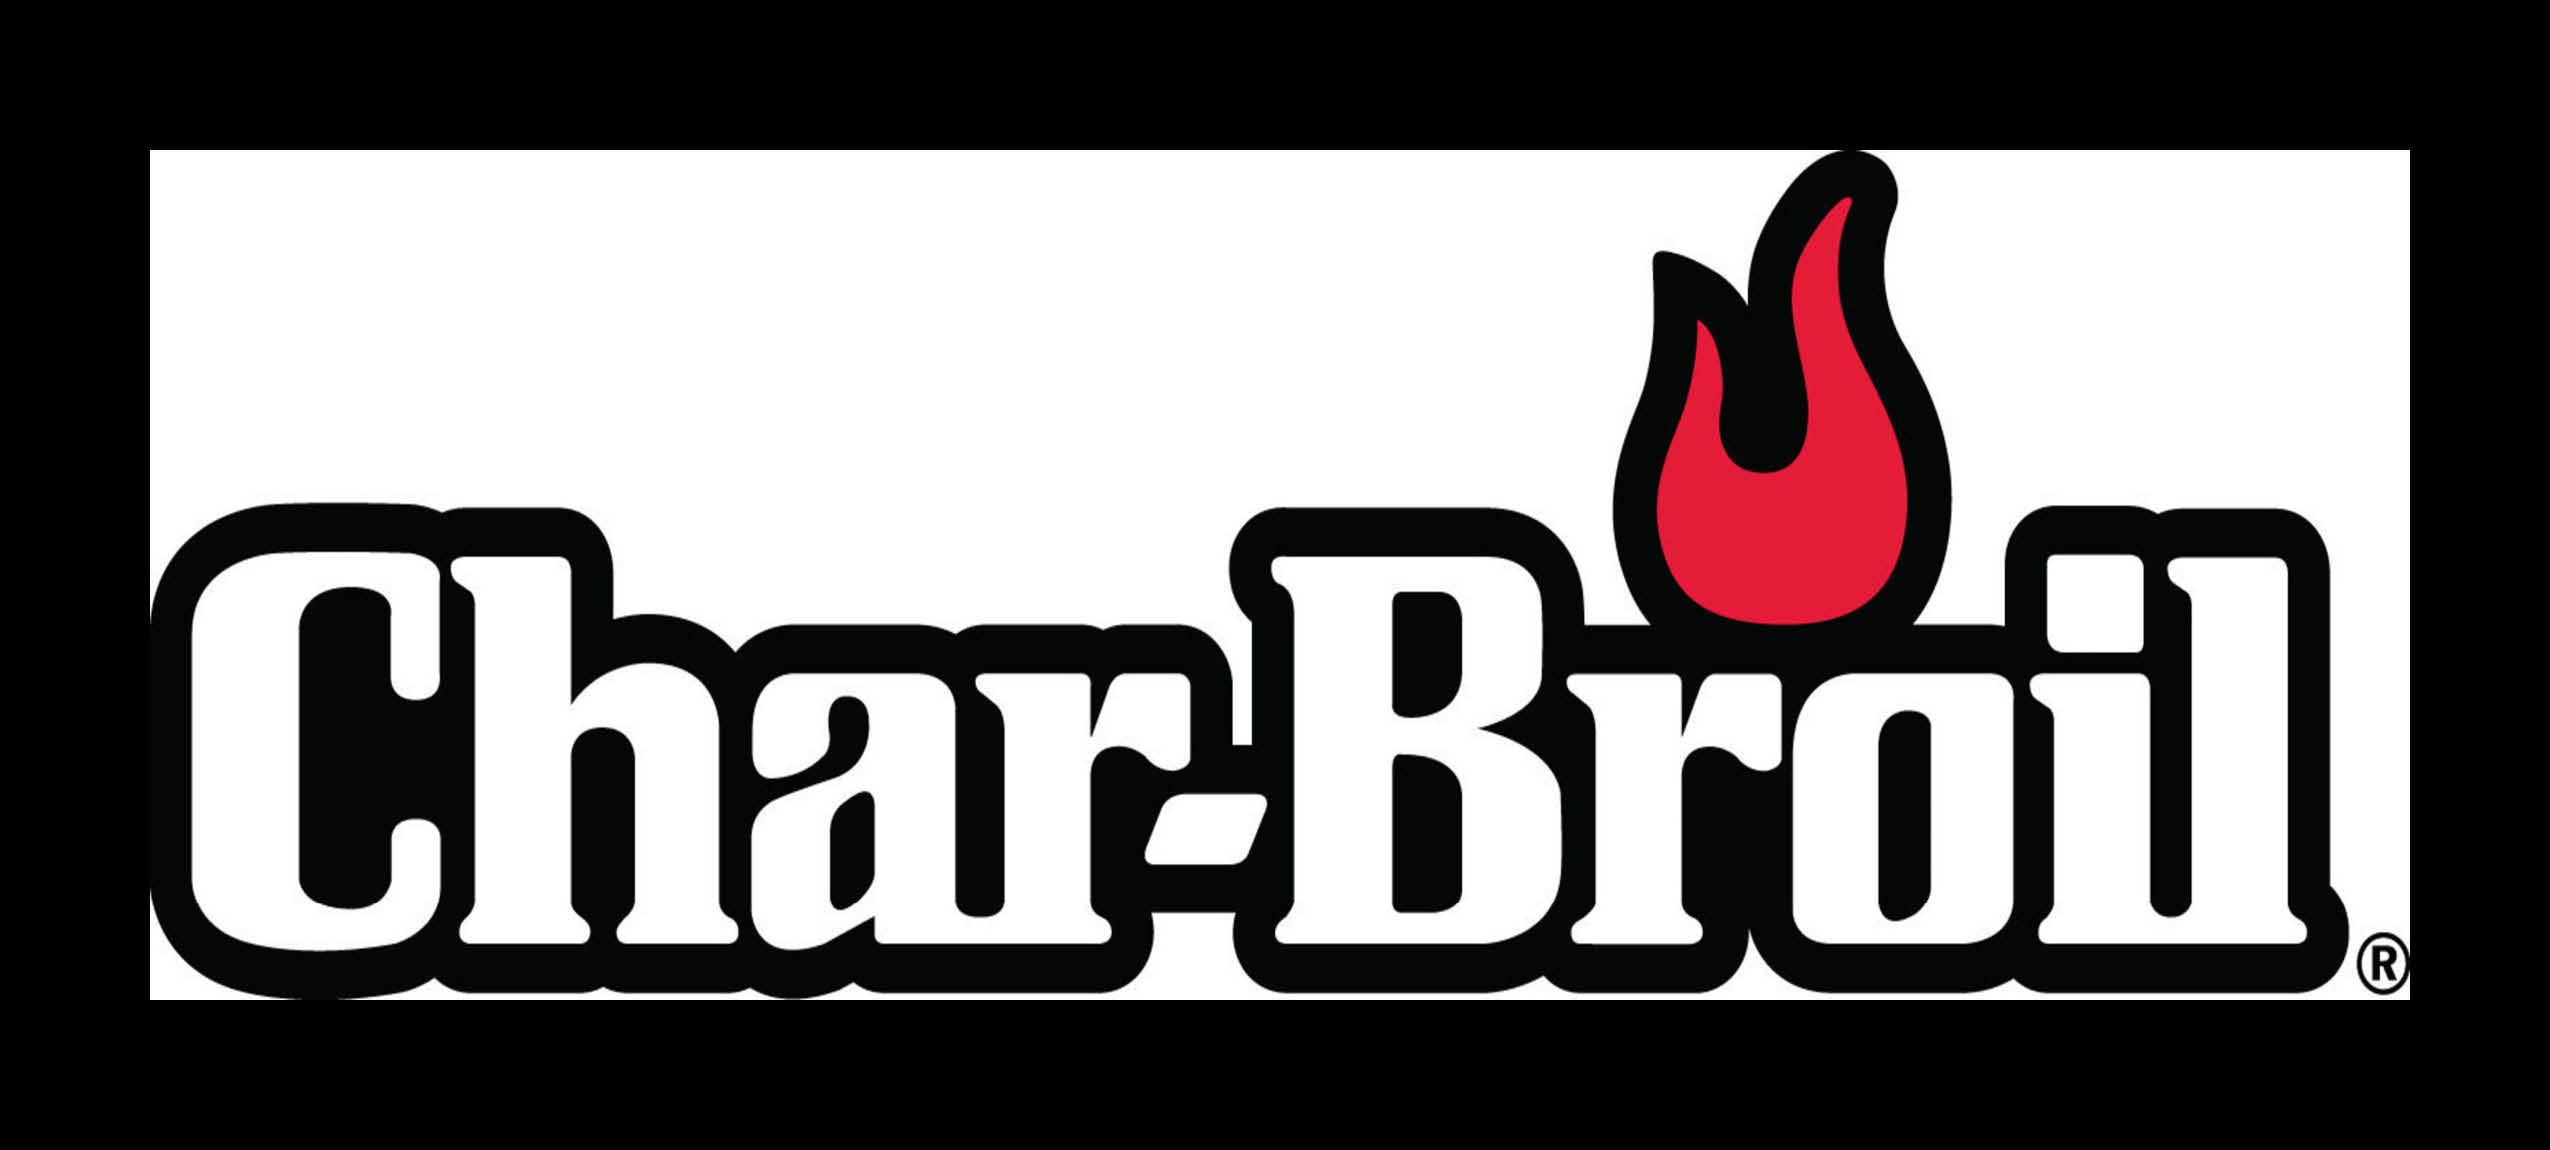 CharbroilBrand2